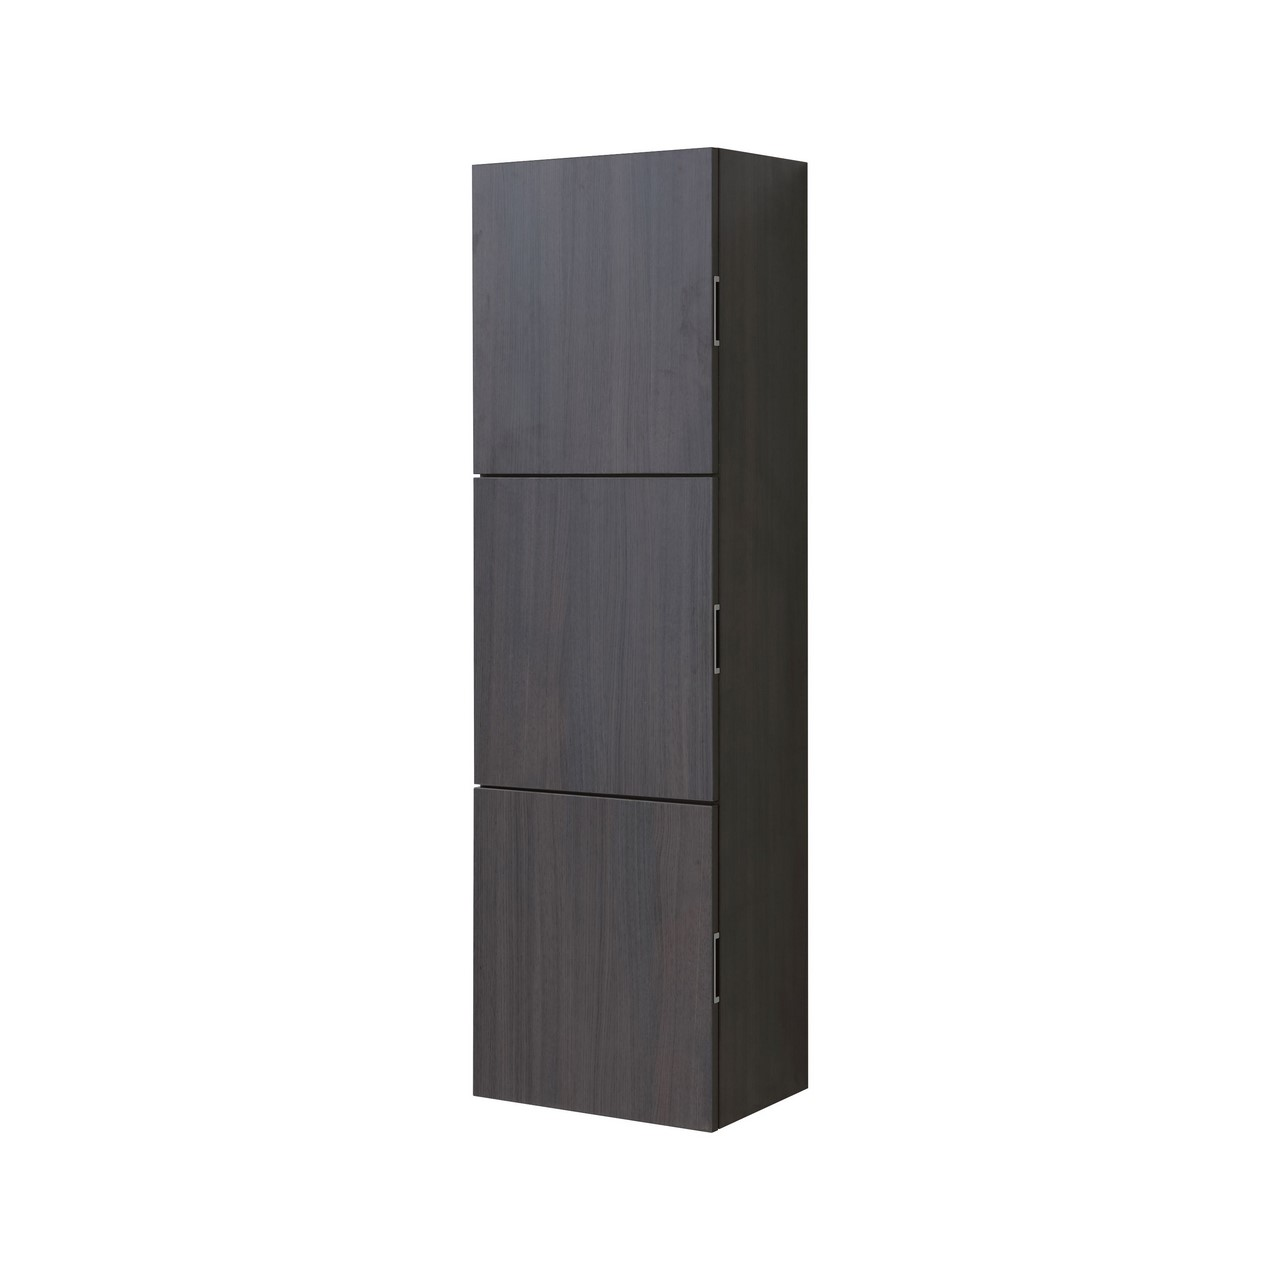 Bathroom High Gloss Gray Oak Linen Side Cabinet w/ 3 Large Storage ...